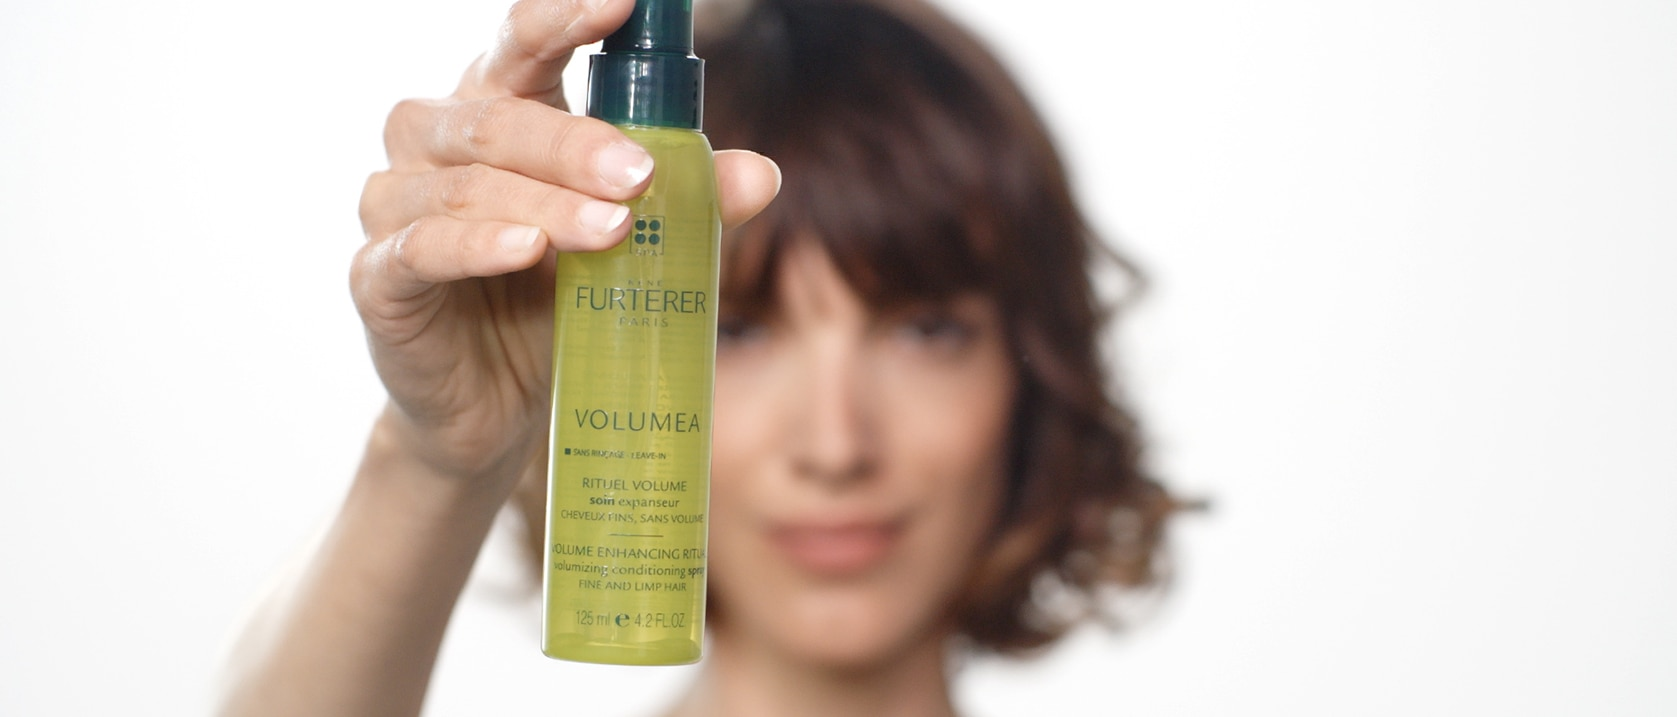 VOLUMEA Volumizing conditioning spray application video  | René Furterer